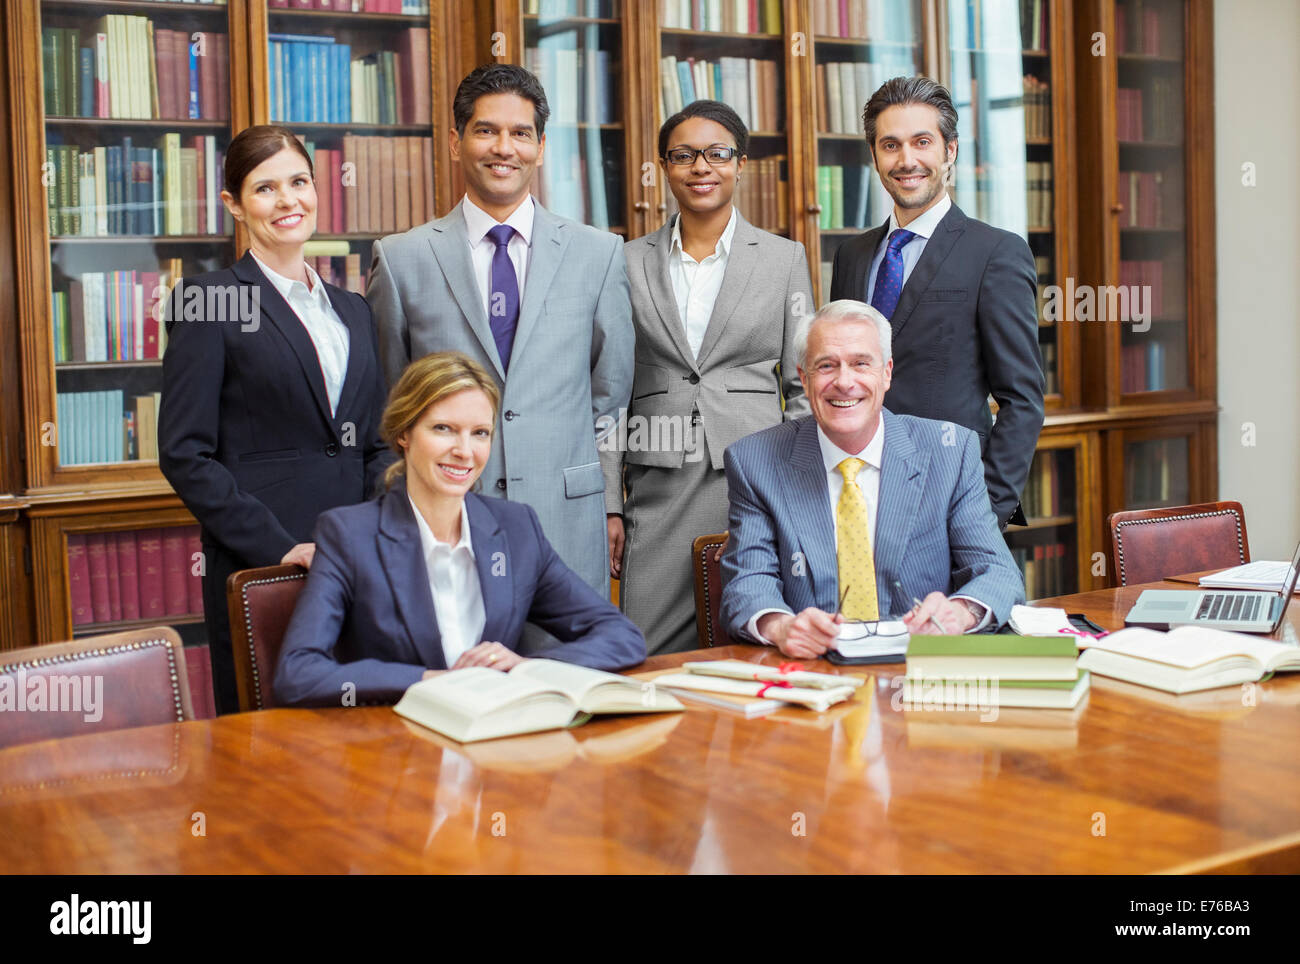 Lawyers together in chambers - Stock Image